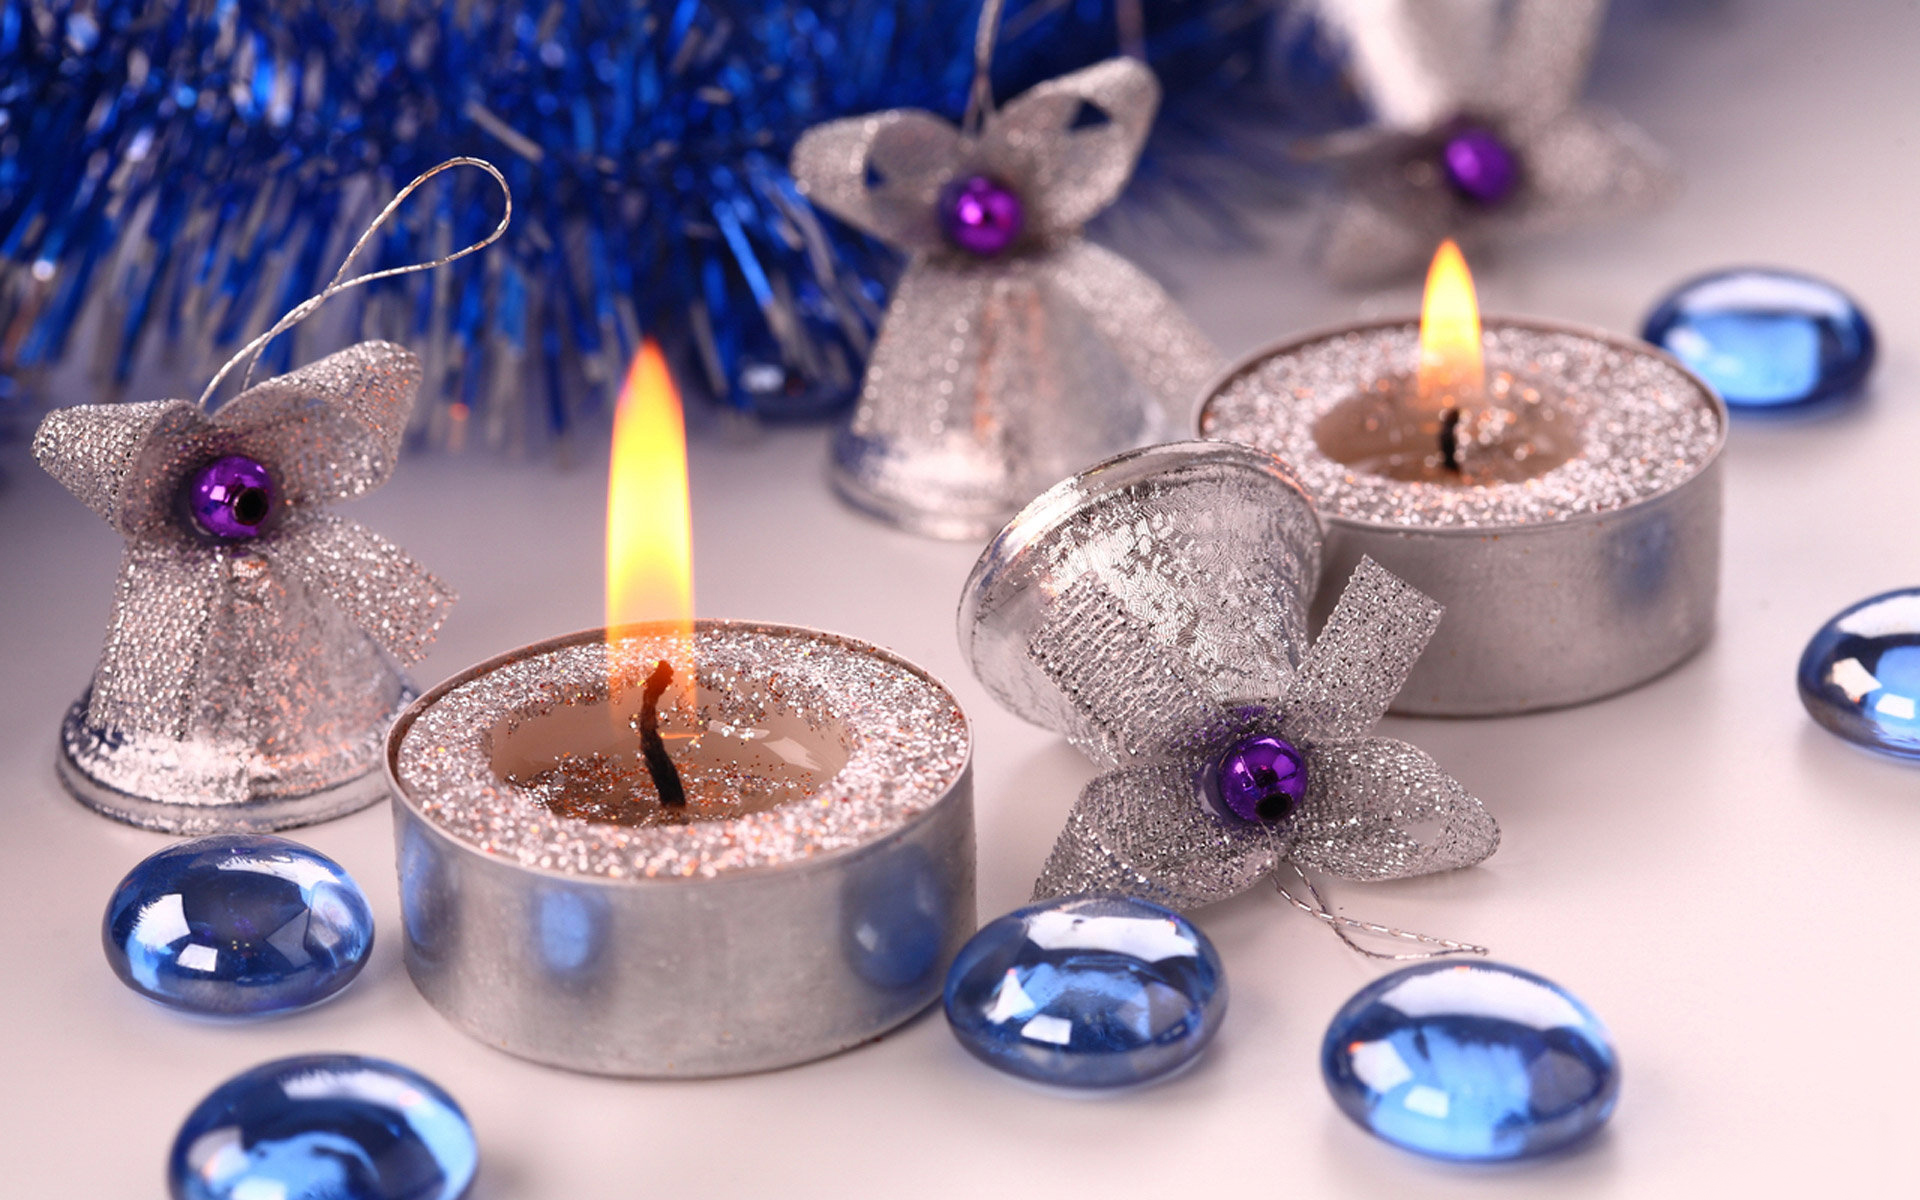 To set this beautiful Christmas candles as wallpaper background on your Desktop, SmartPhone, Tablet, Laptop, iphone, ipad click above to open in a new ...